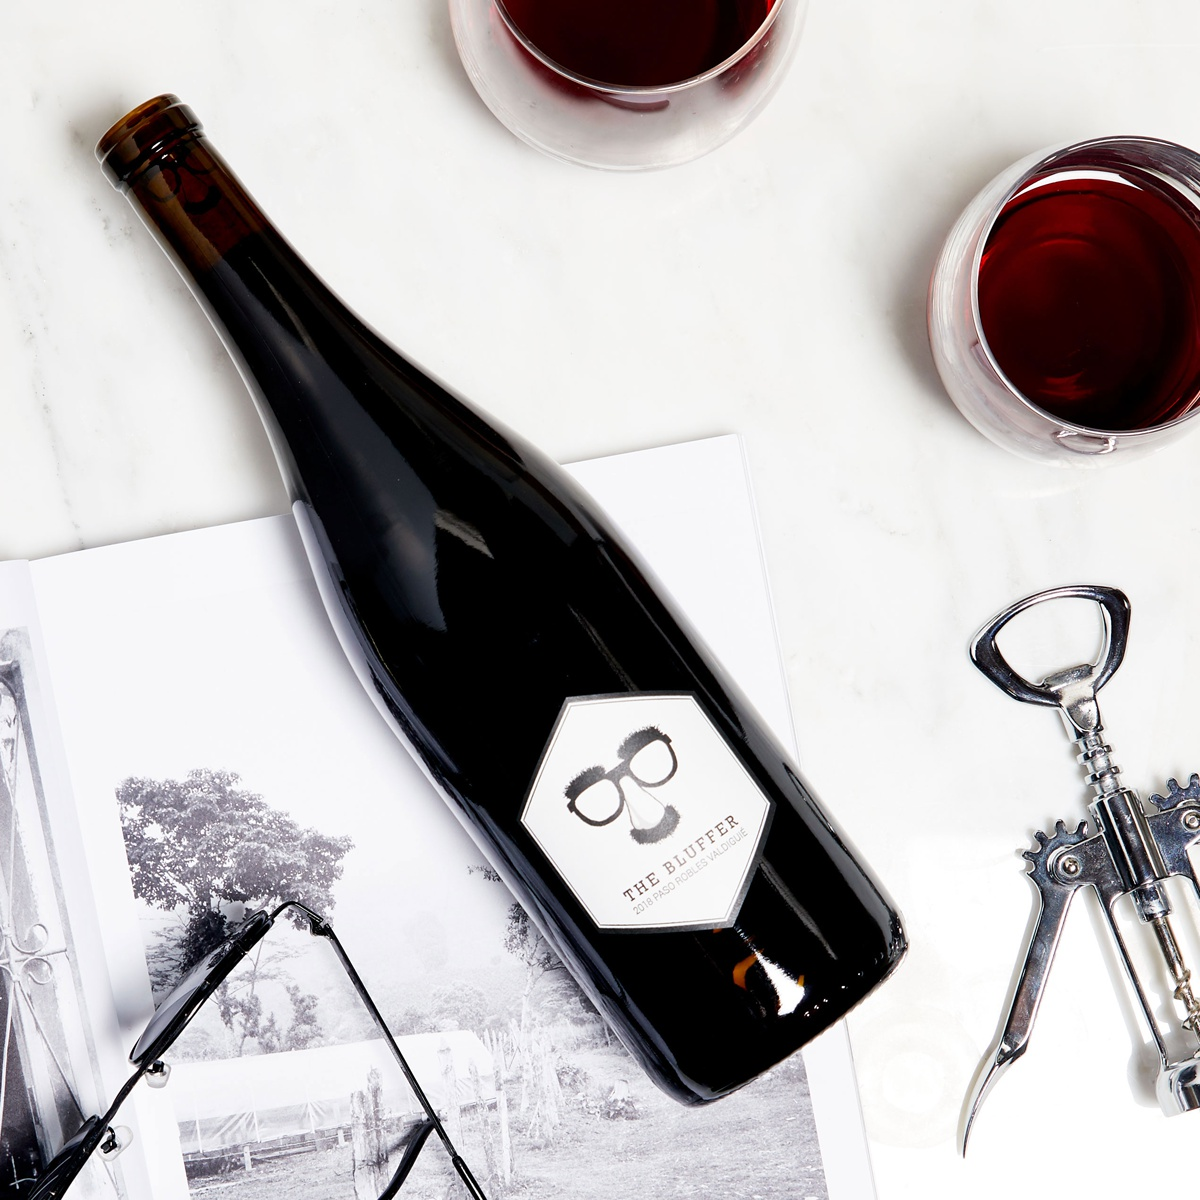 a bottle of Winc's bluffer valdiguié styled in a lay flat on a white surface with a corkscrew, two glasses of red wine, a pencil illustration and a pair of sunglasses